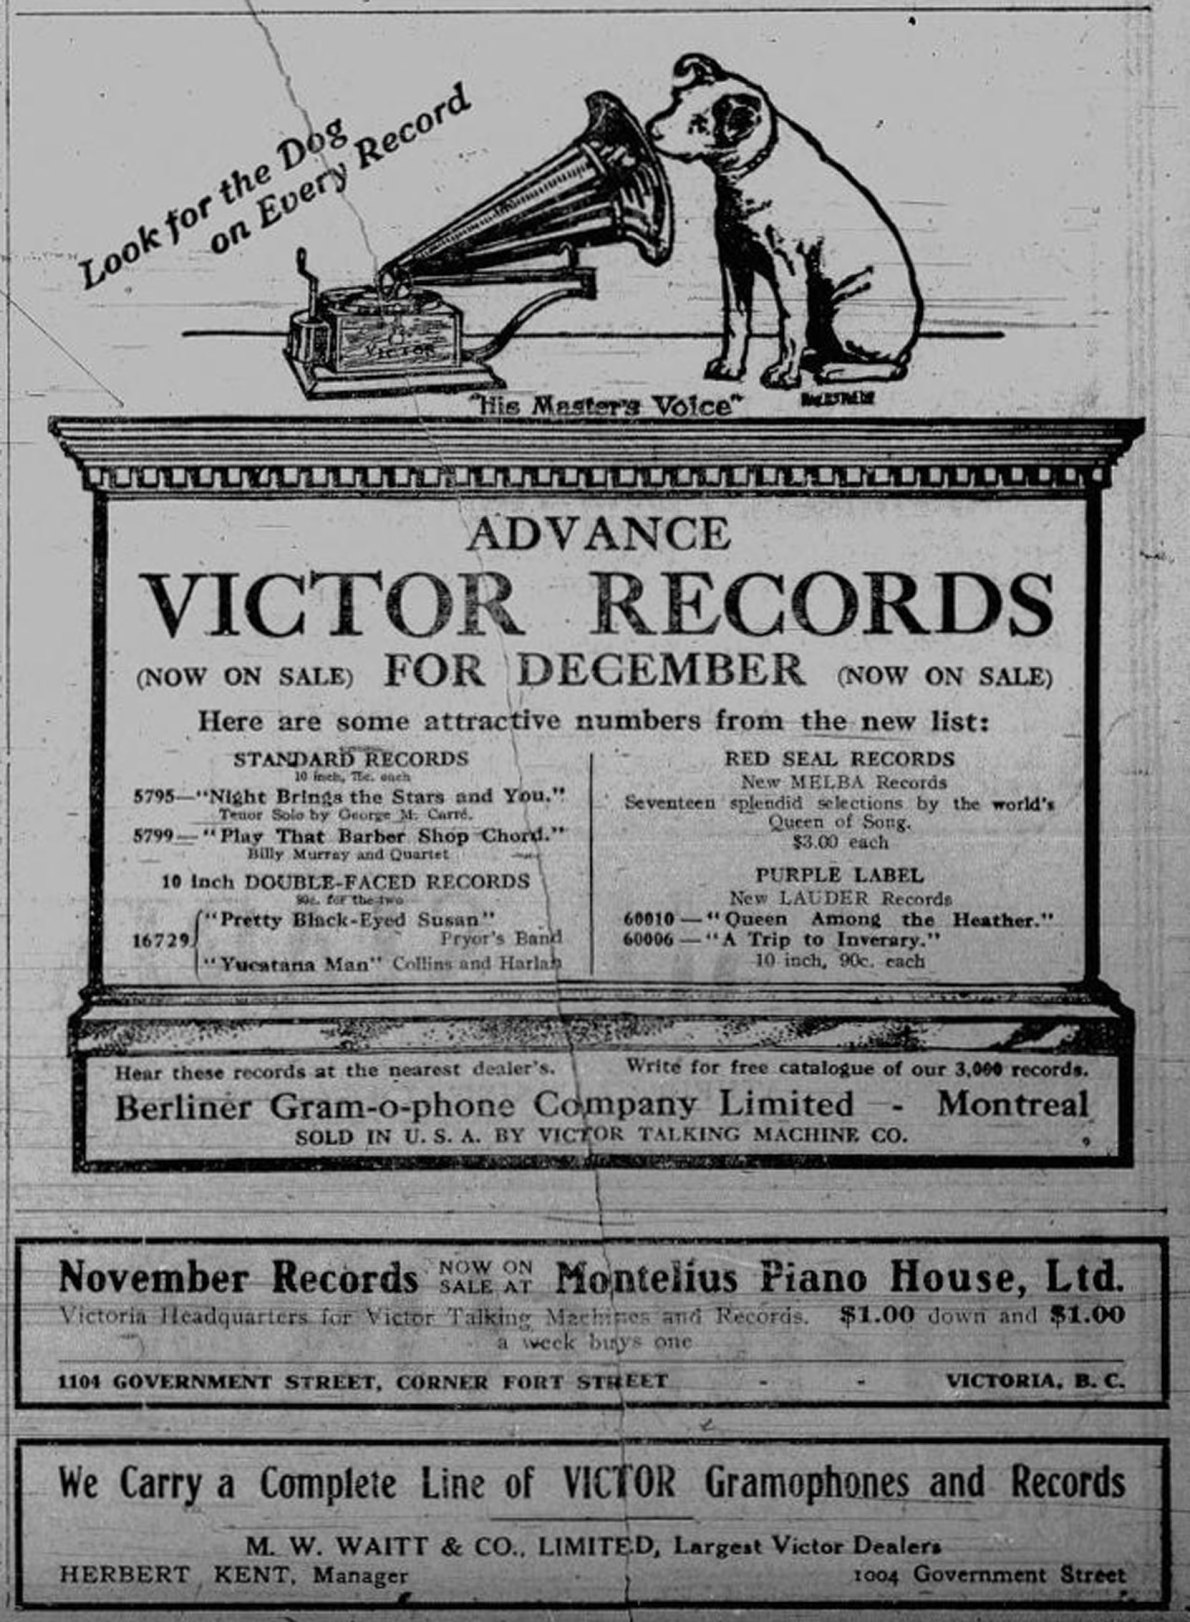 1910 advertisement for Victor Records, sold at 1004 Government Street and 1102 Government Street (Victoria Online Sightseeing Tours collection)